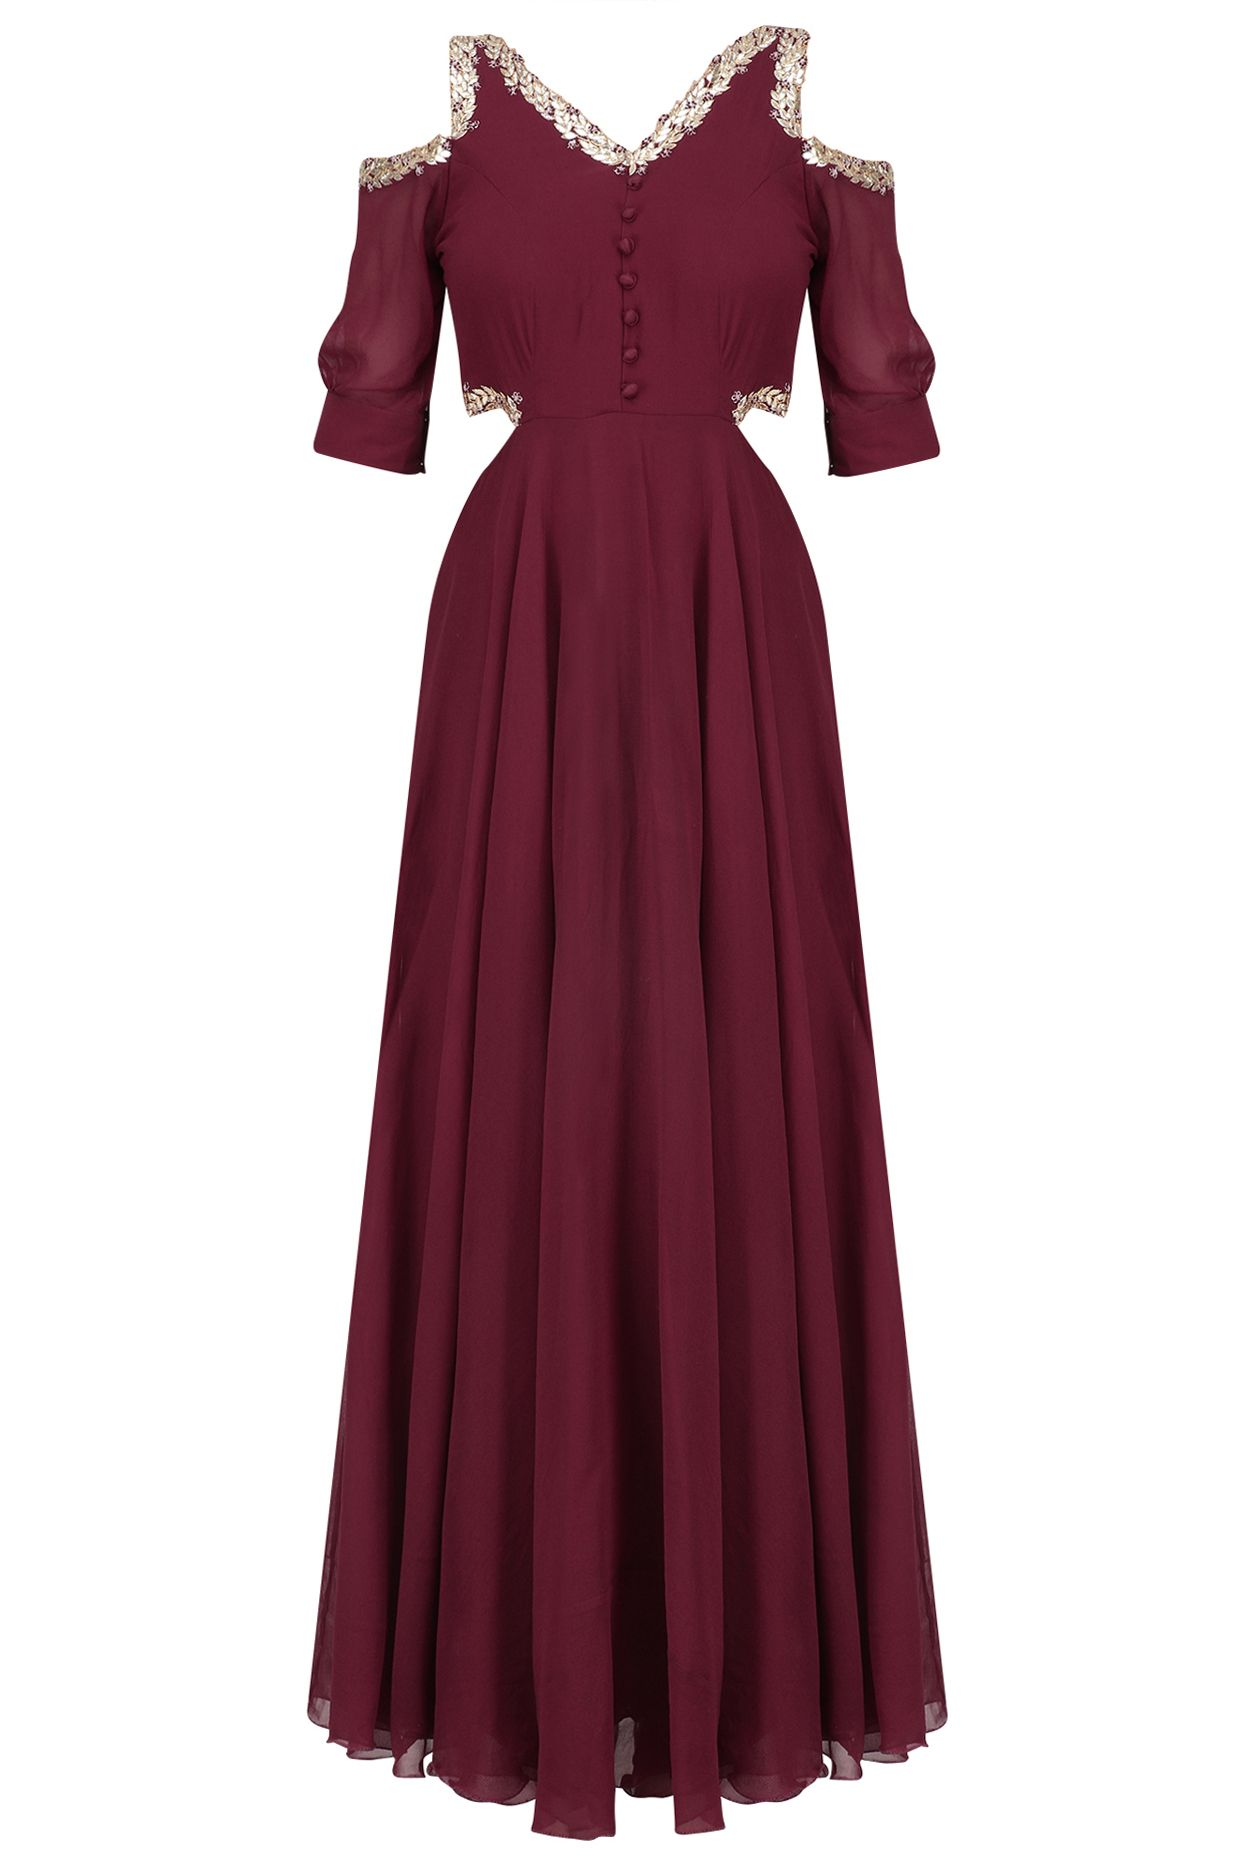 154c8de0aa5 Marsala red gota embroidered cold shoulder gown available only at Pernia s  Pop Up Shop.